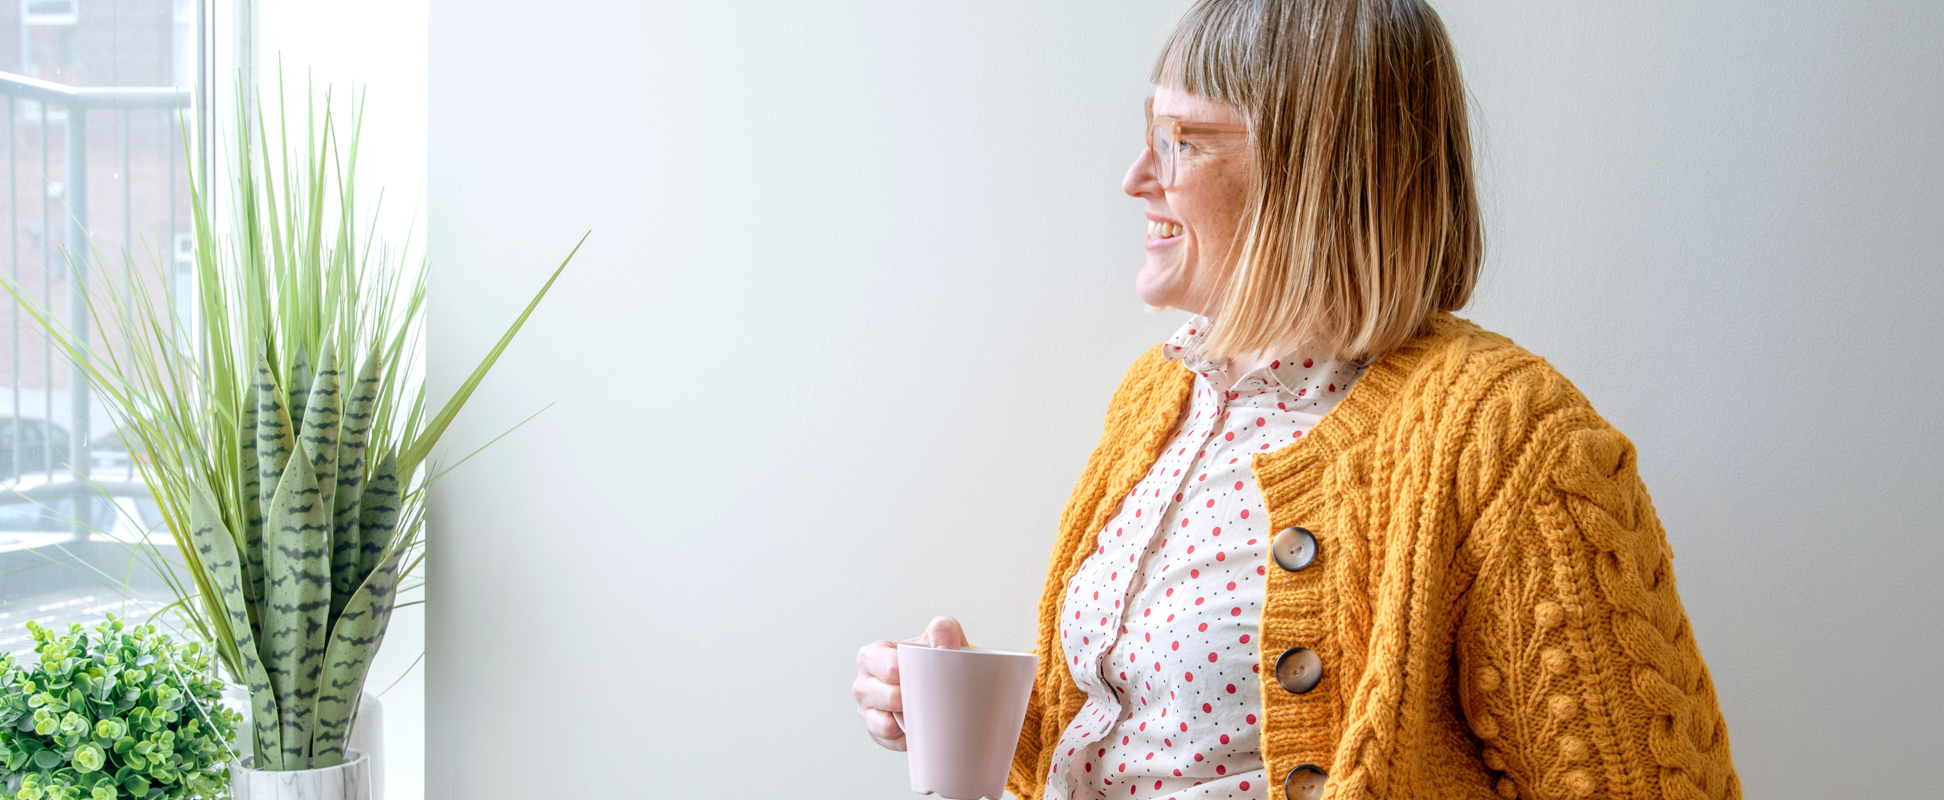 Yarnspirations designer Nicole Winer, wearing the Dovercourt Cardigan knit pattern